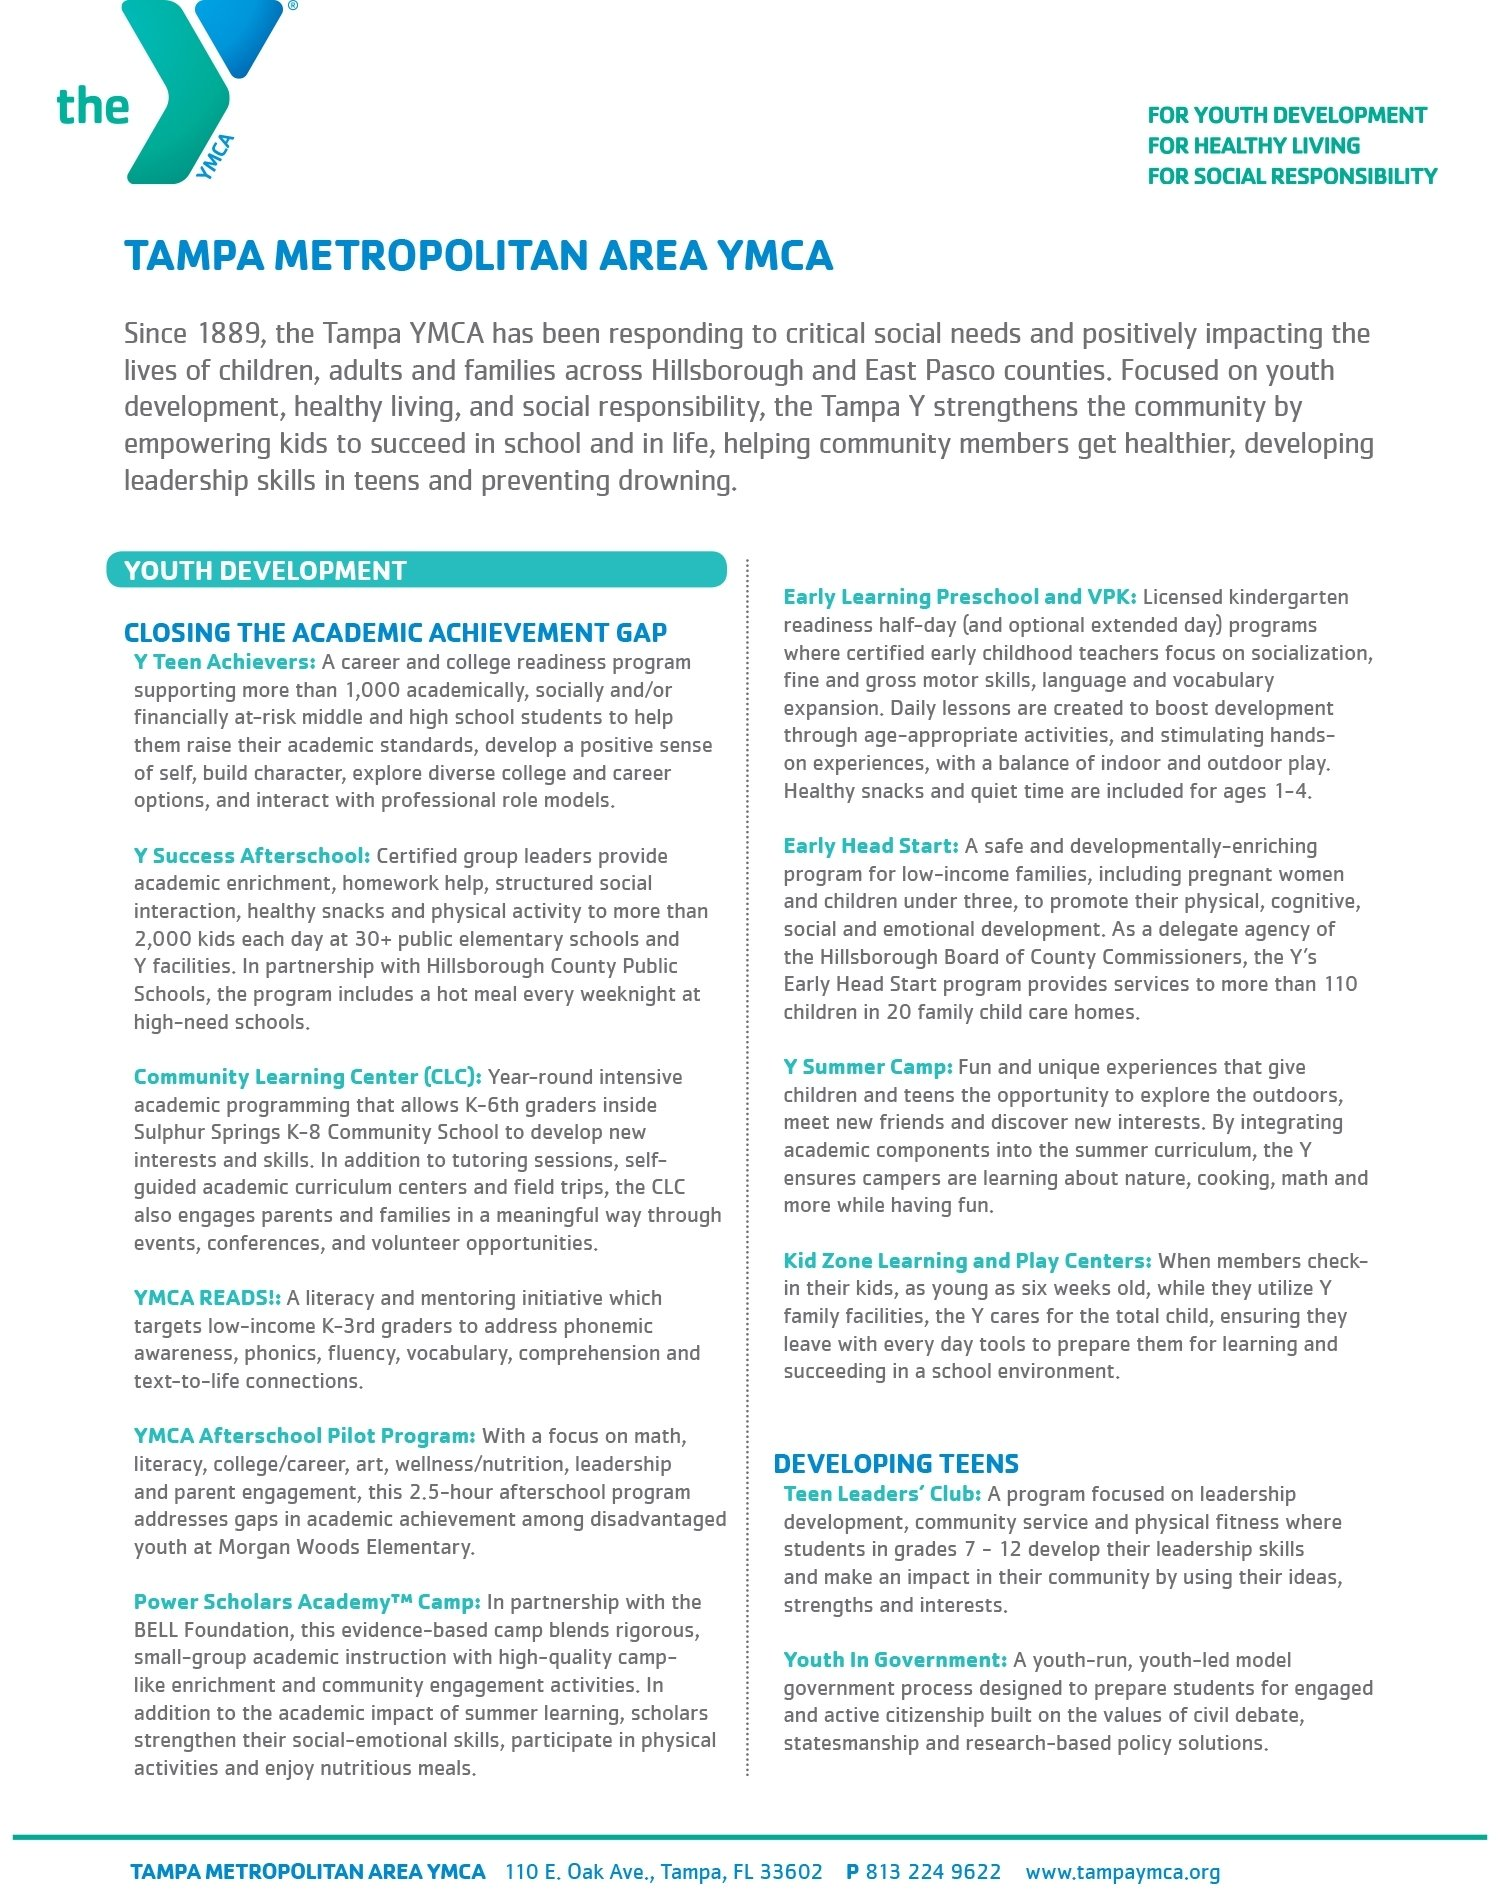 10 Lovely Community Service Ideas For High School serving the community tampa metropolitan area ymca 2